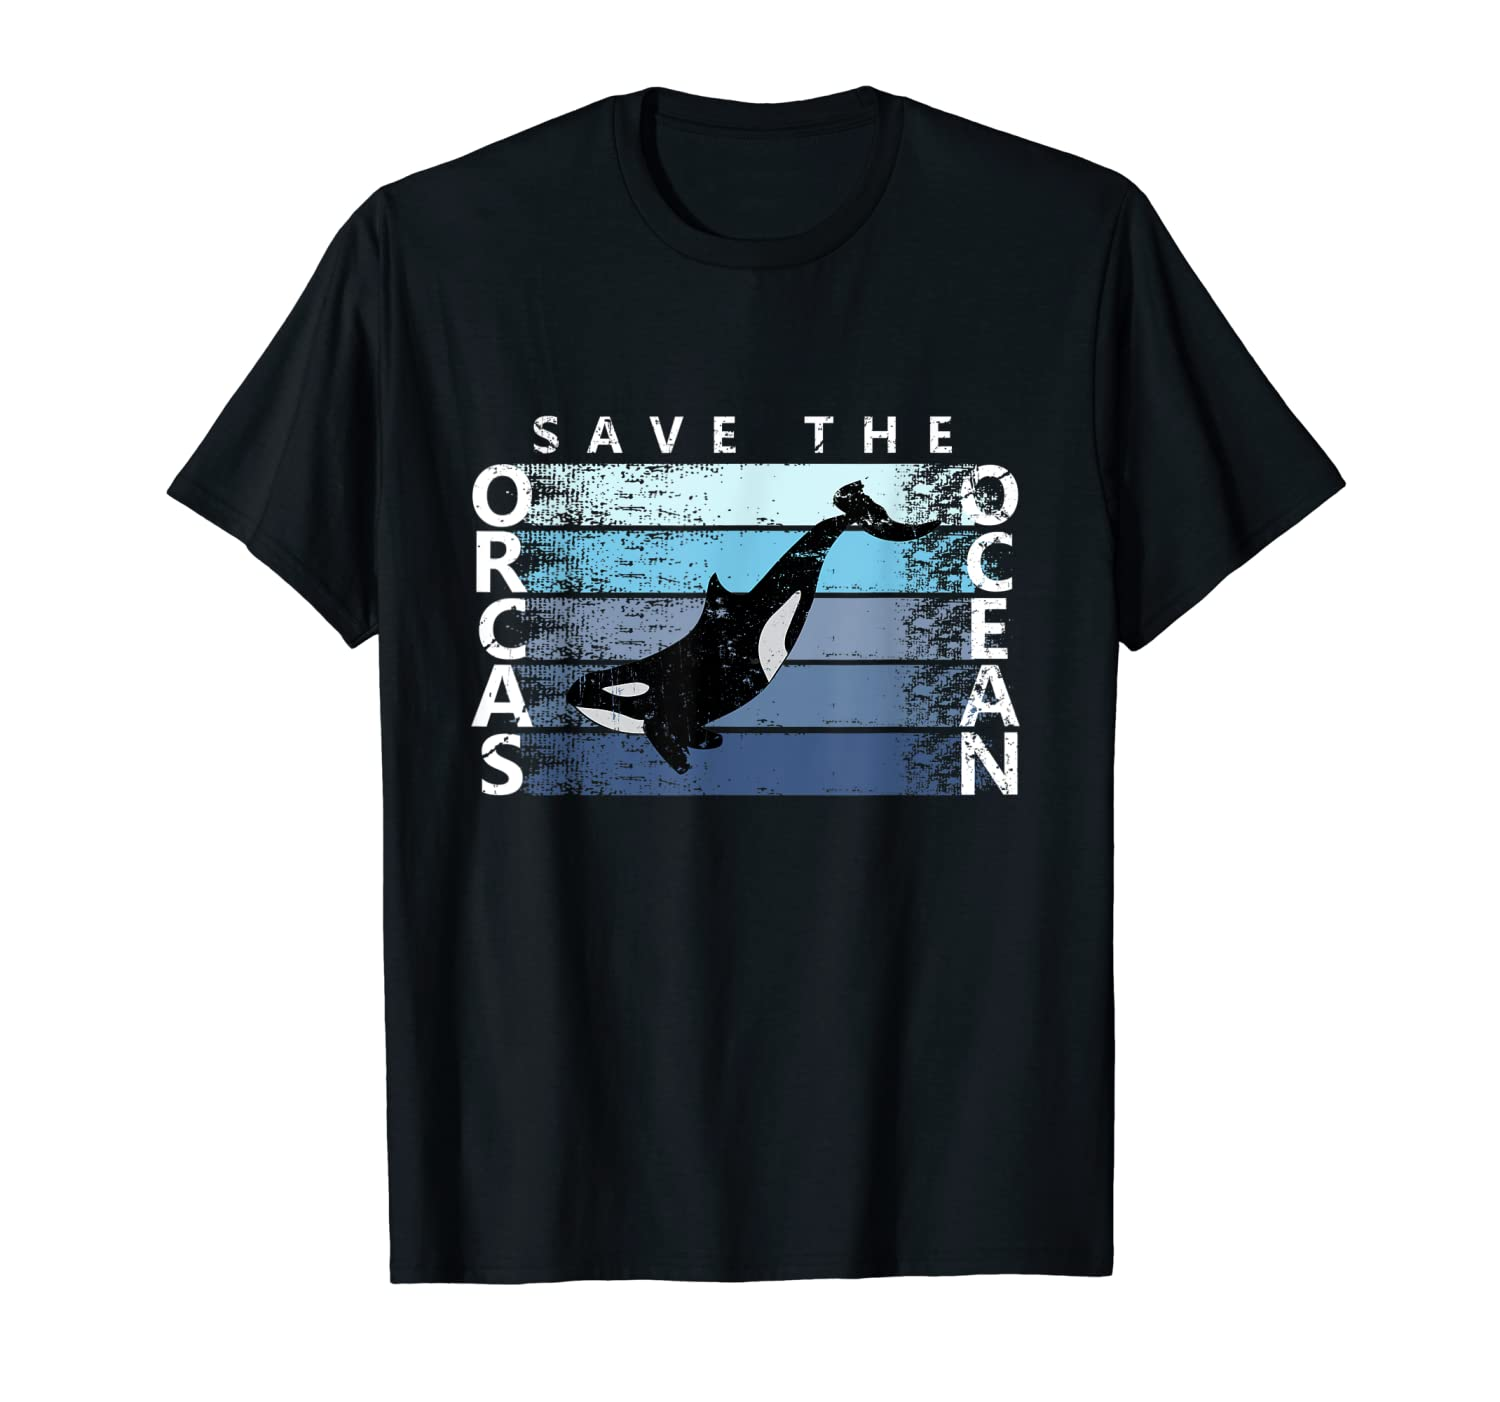 Save the orcas save the Ocean t-shirt for orca whale lovers-ANZ